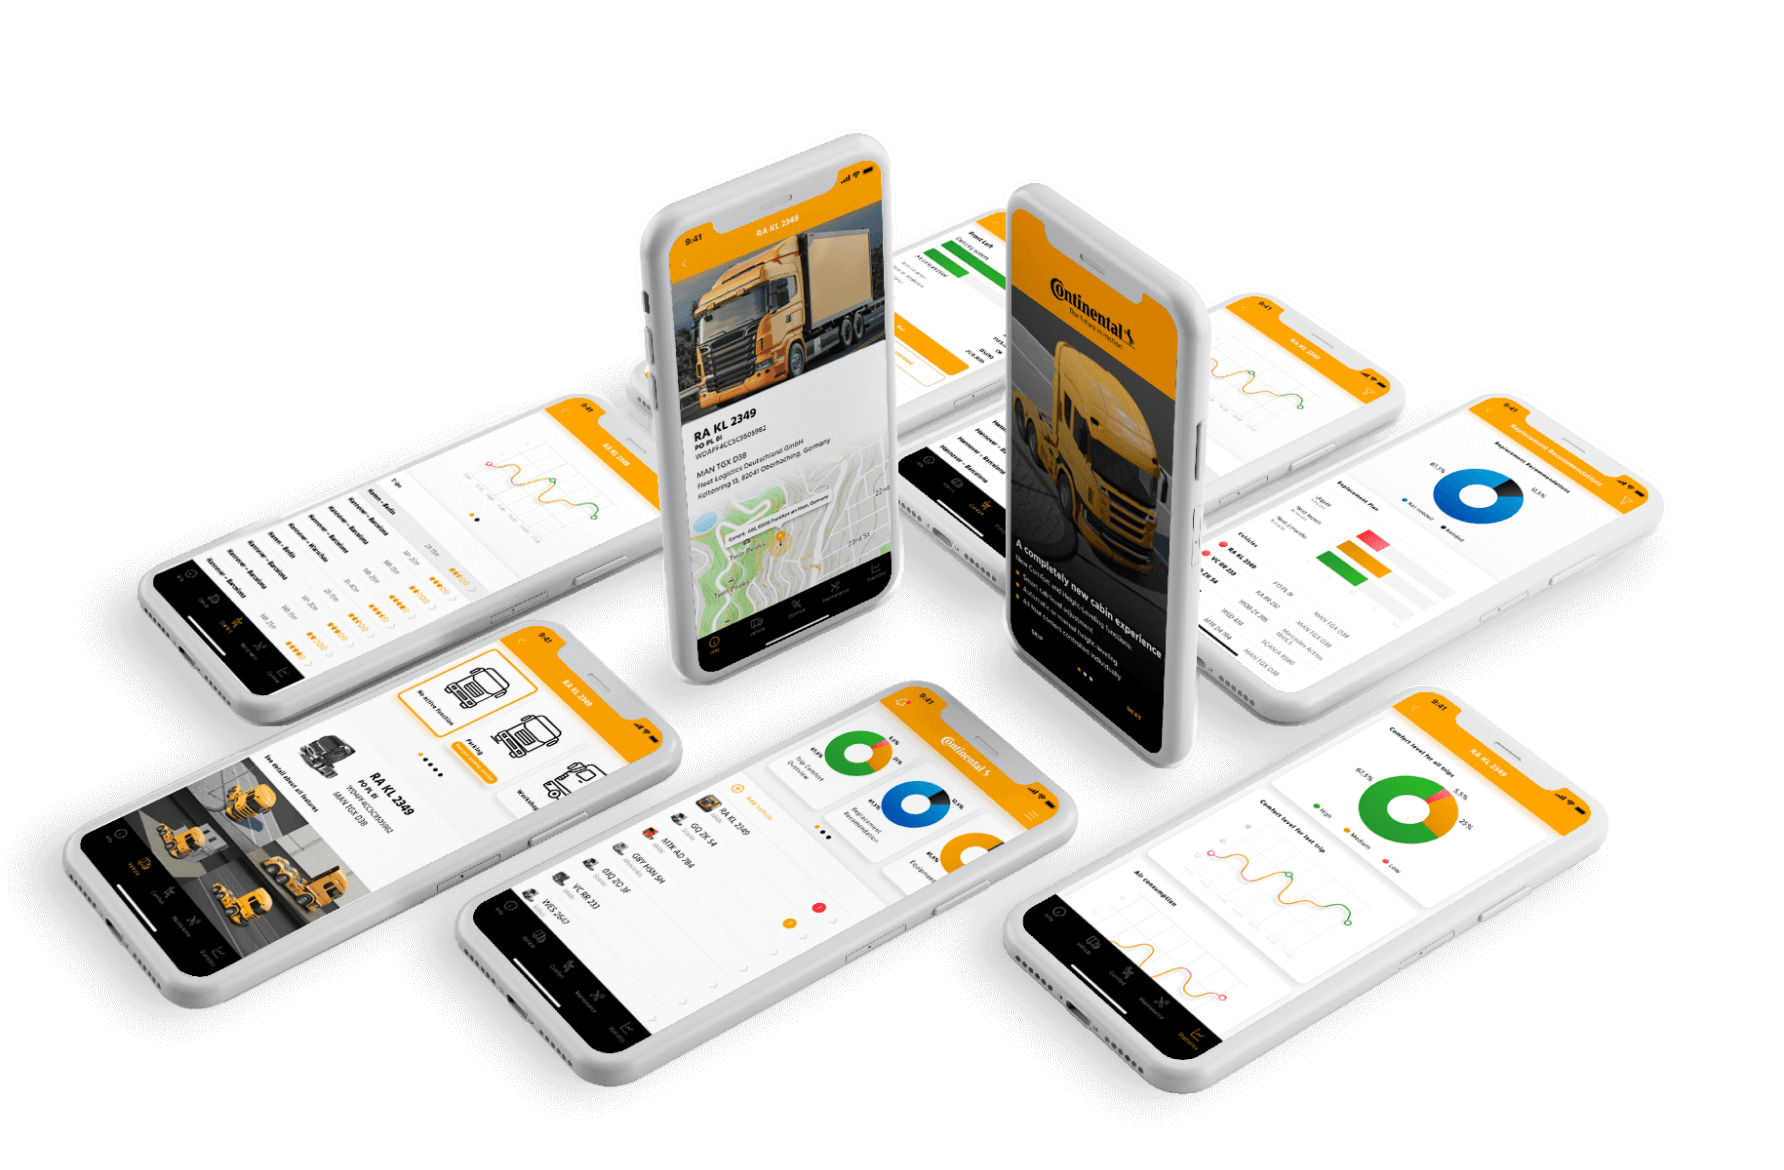 Integrated mobile application for fleet management functionality